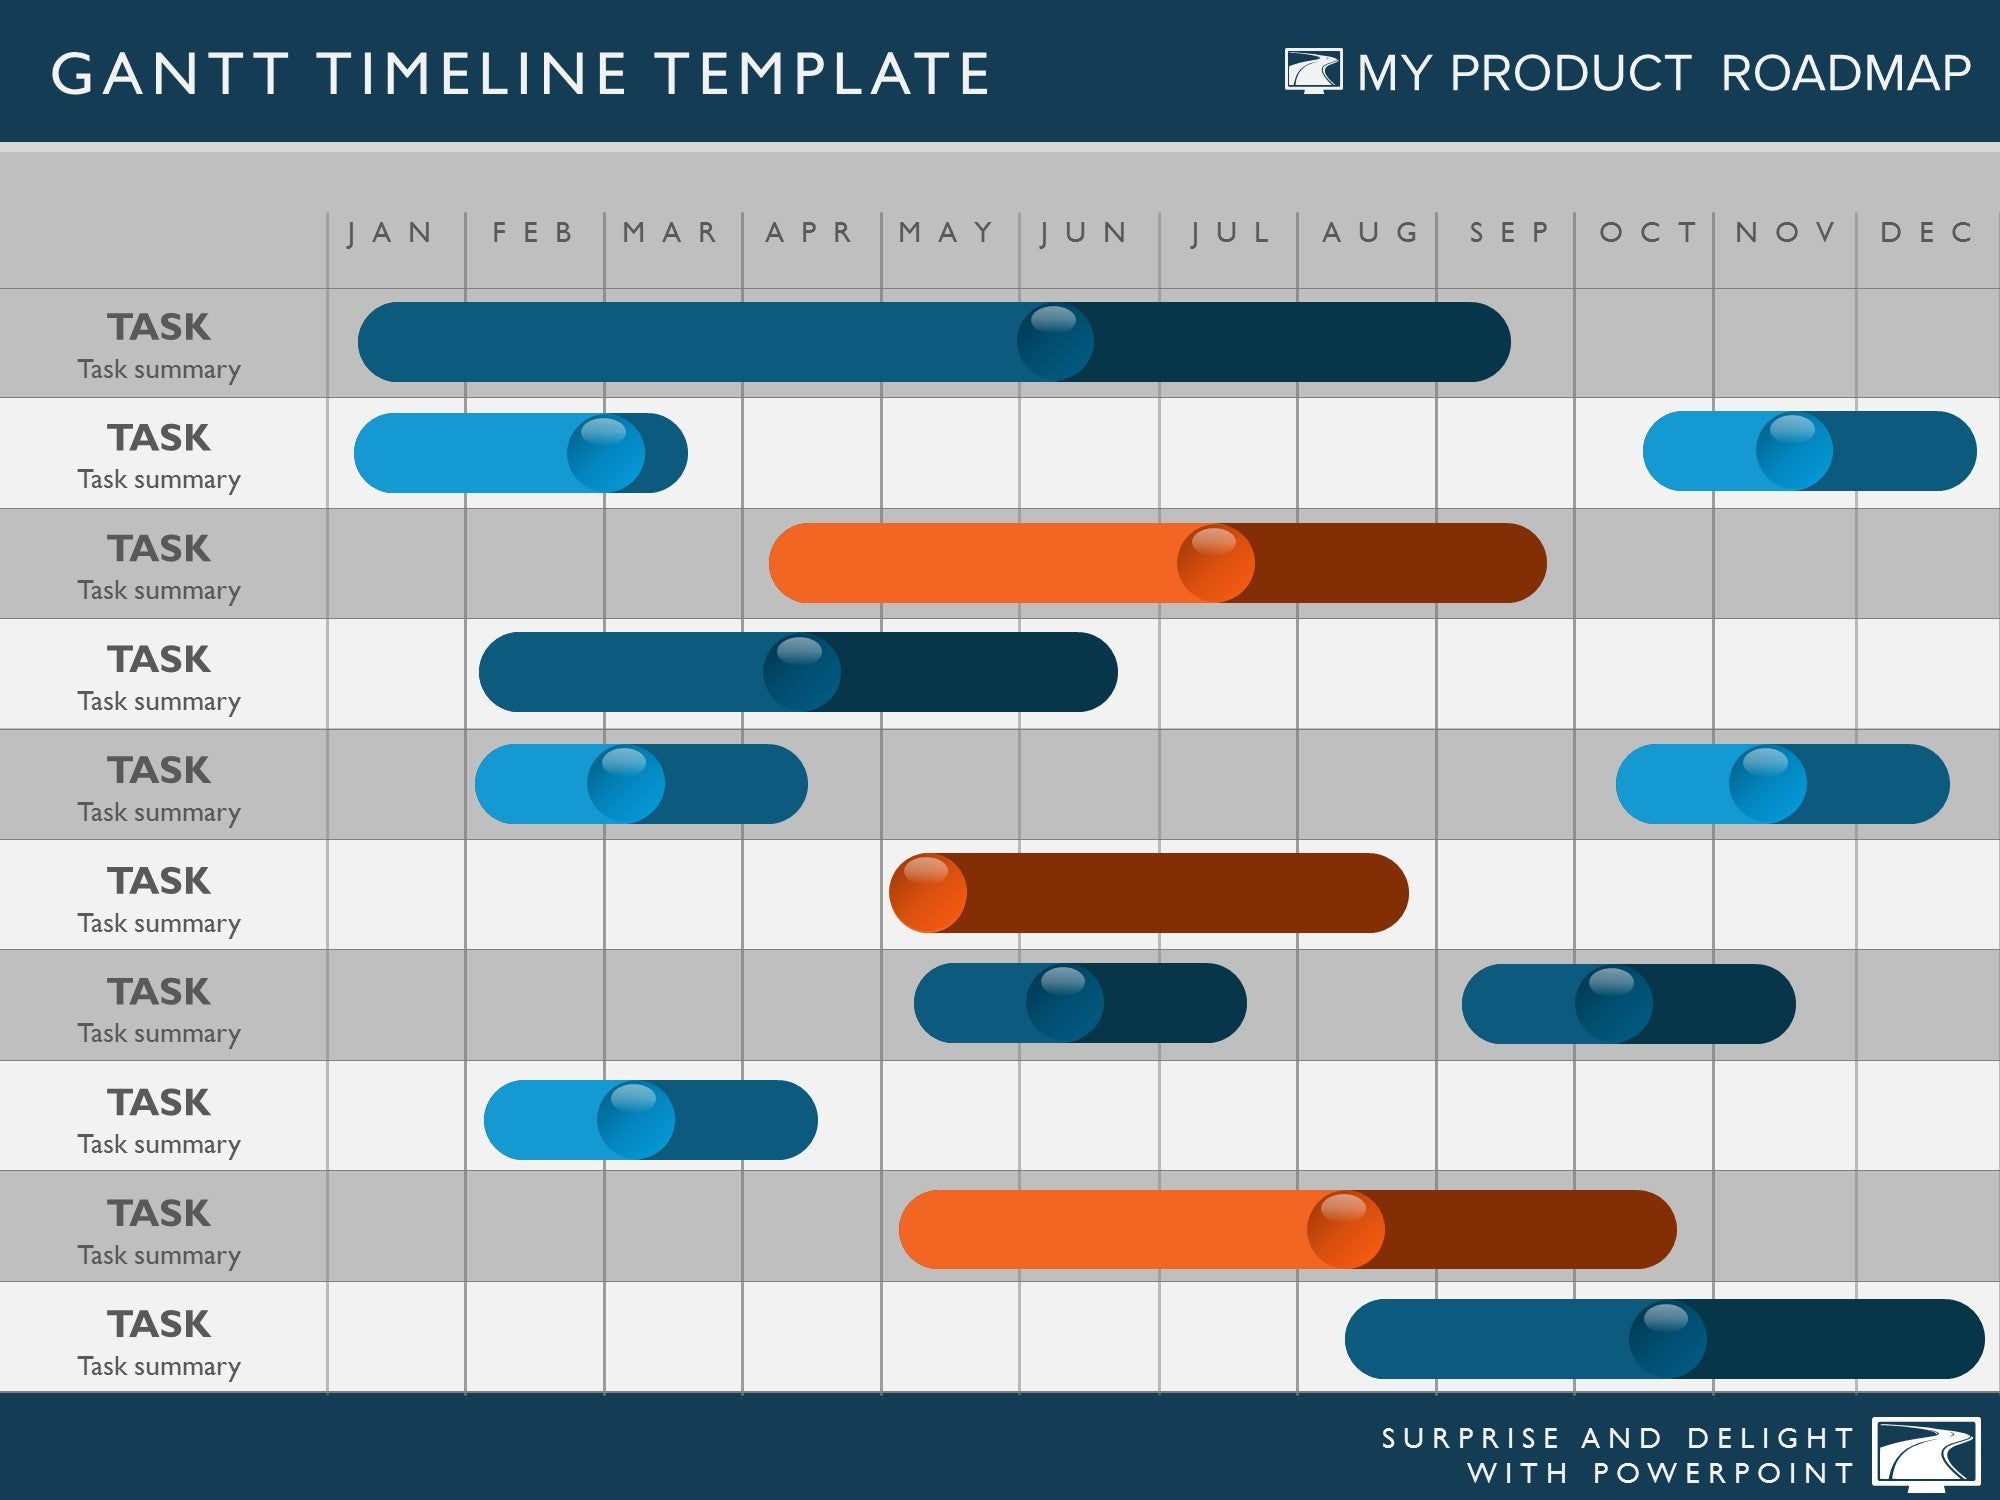 Twelve Phase Powerpoint Timeline Graphic My Product Roadmap - Timeline roadmap template